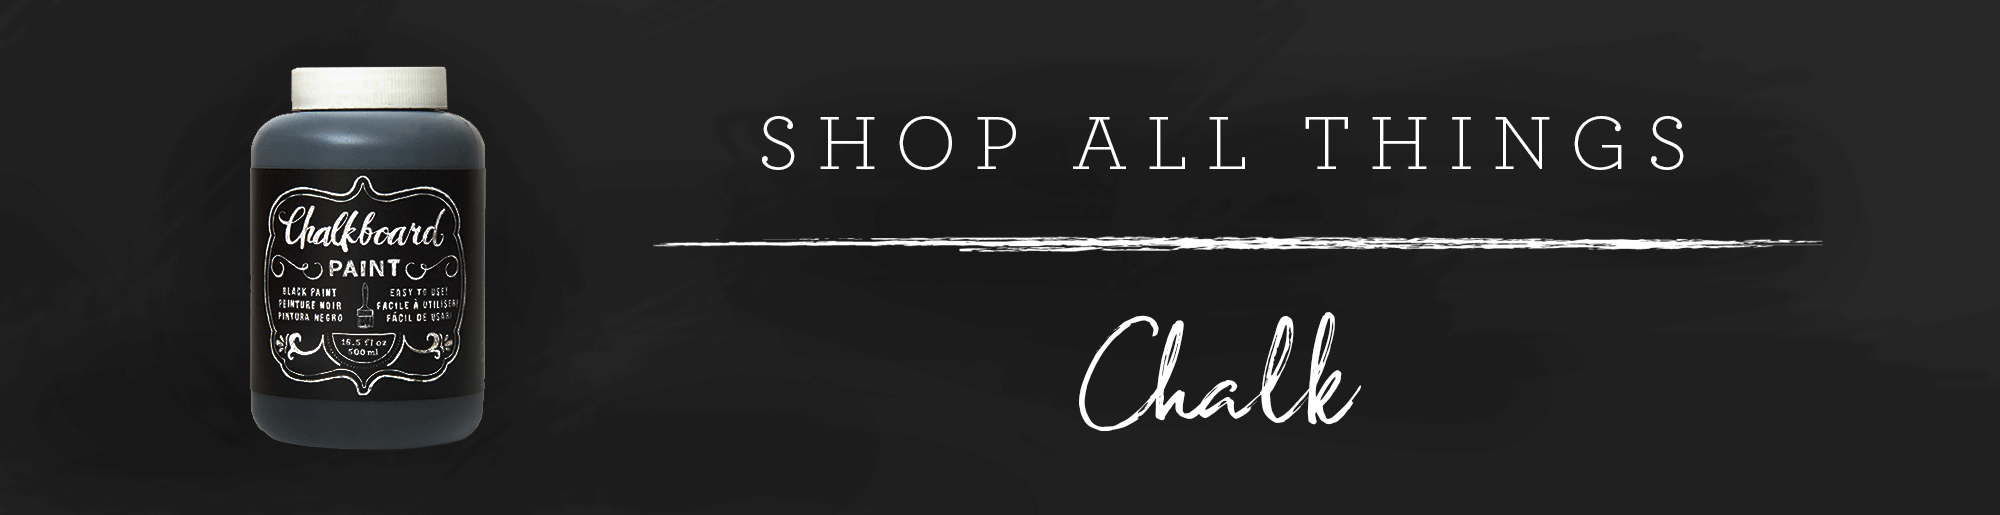 AC-SHOP-chalk-graphic-